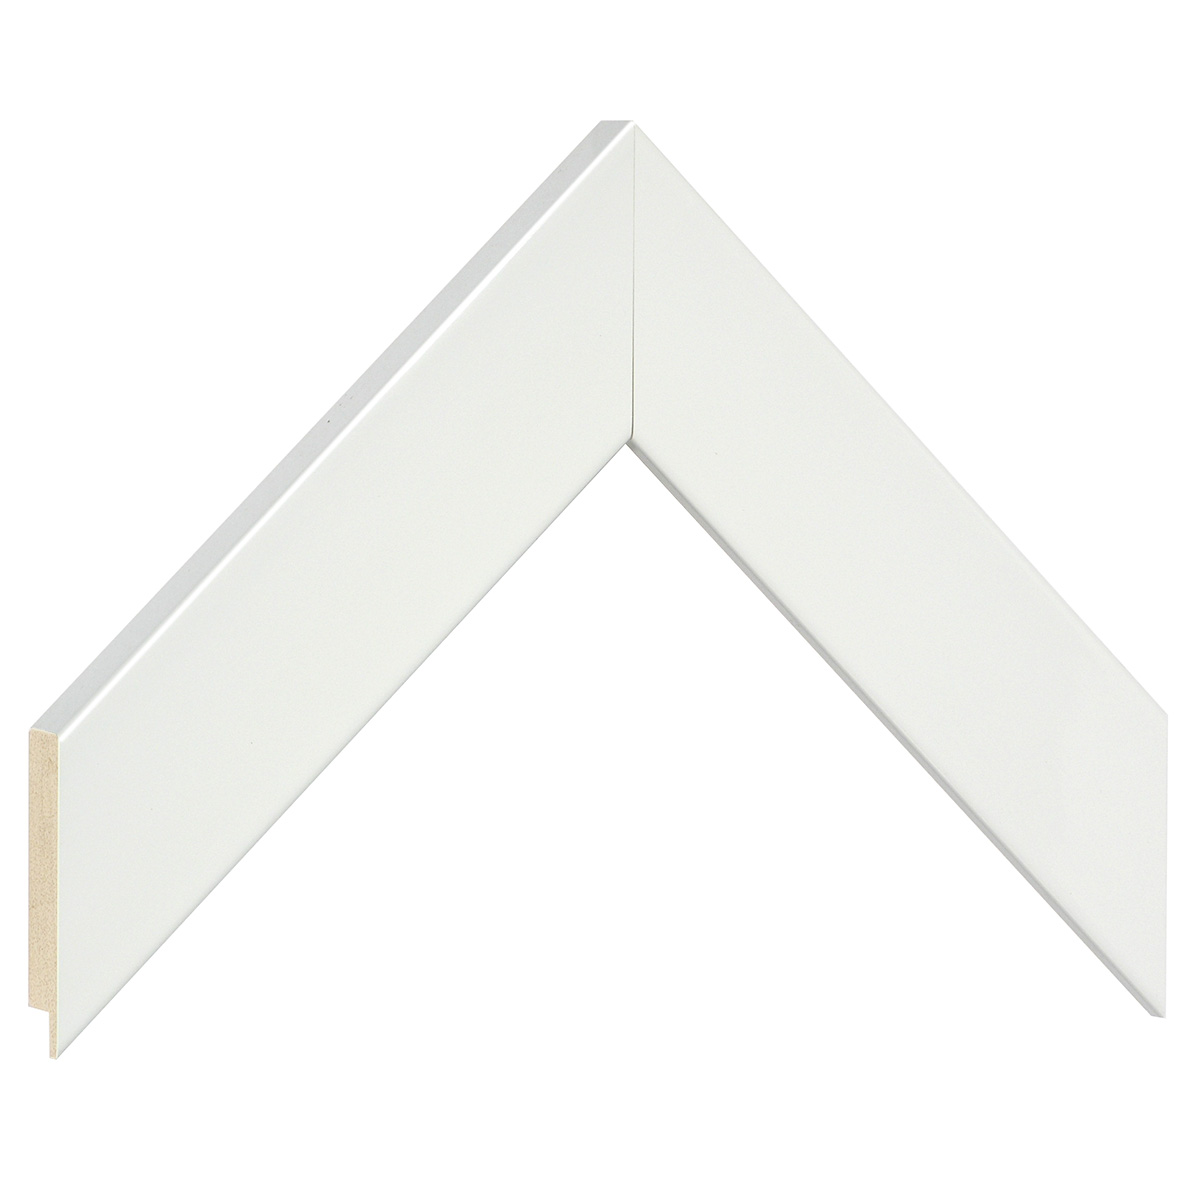 Moulding ayous, width 40mm height 16 - Glossy White